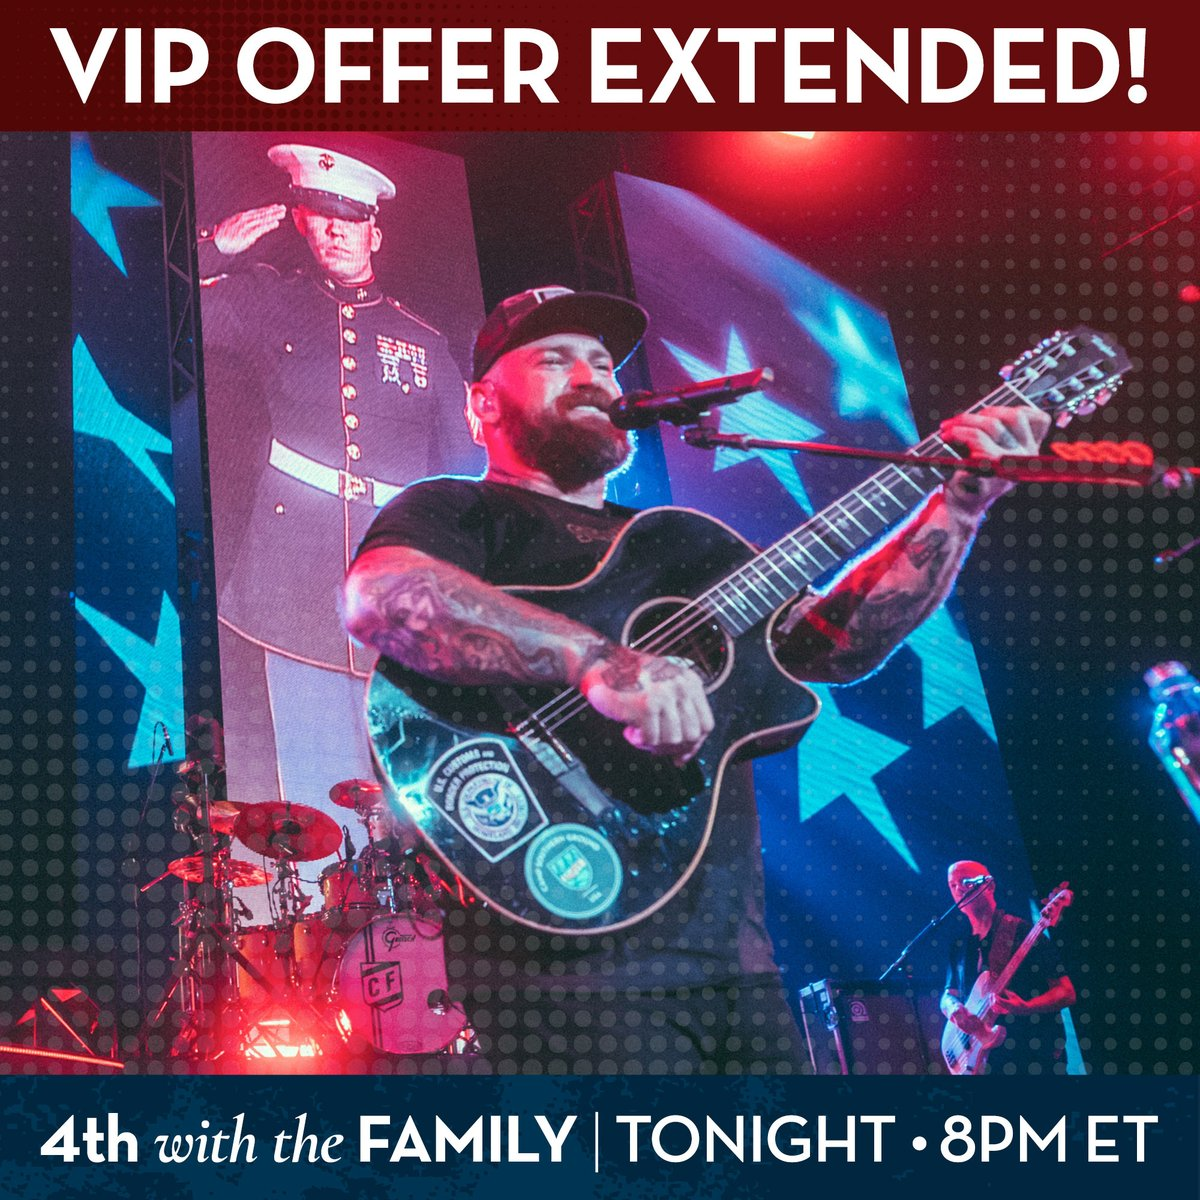 We're so excited about #4thwiththefamily tonight, we're extending our VIP offer! Donate $100 by 2:00PM ET for access to an exclusive pre-show event with @zacbrownband! All proceeds support #warriorwellbeing @campsouthernground. Donate now at https://t.co/k9bdLXBQh1 https://t.co/XSMphQE5aN